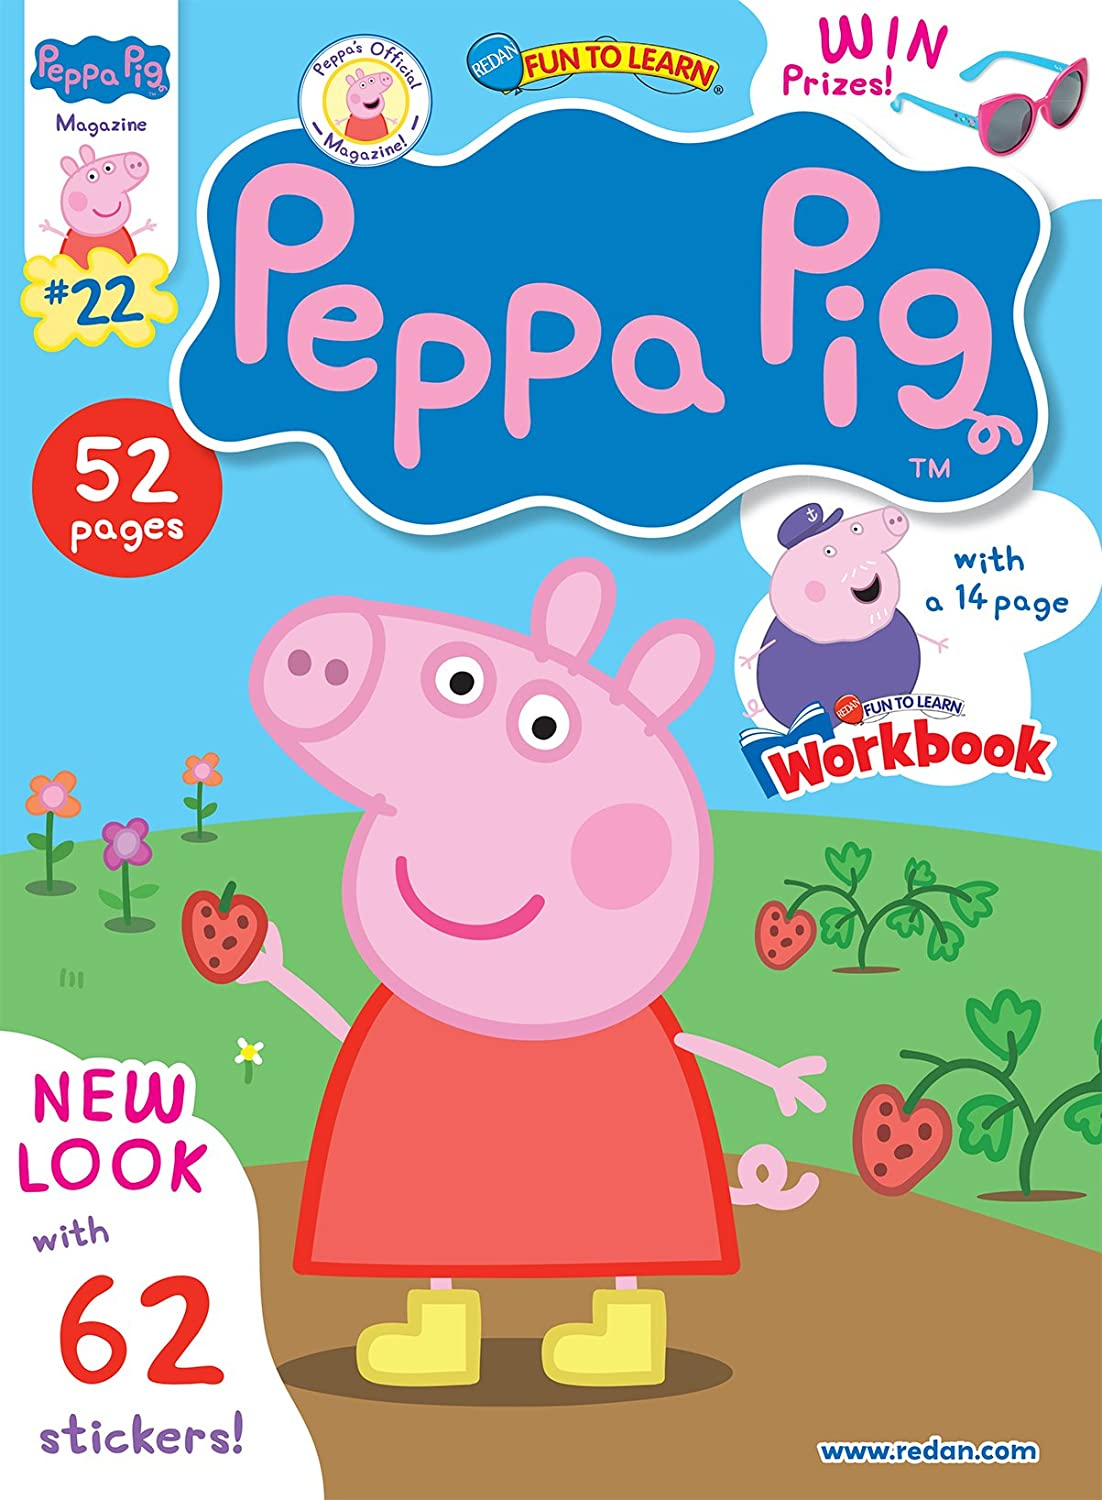 Peppa Pig Magazine Amazon Magazines